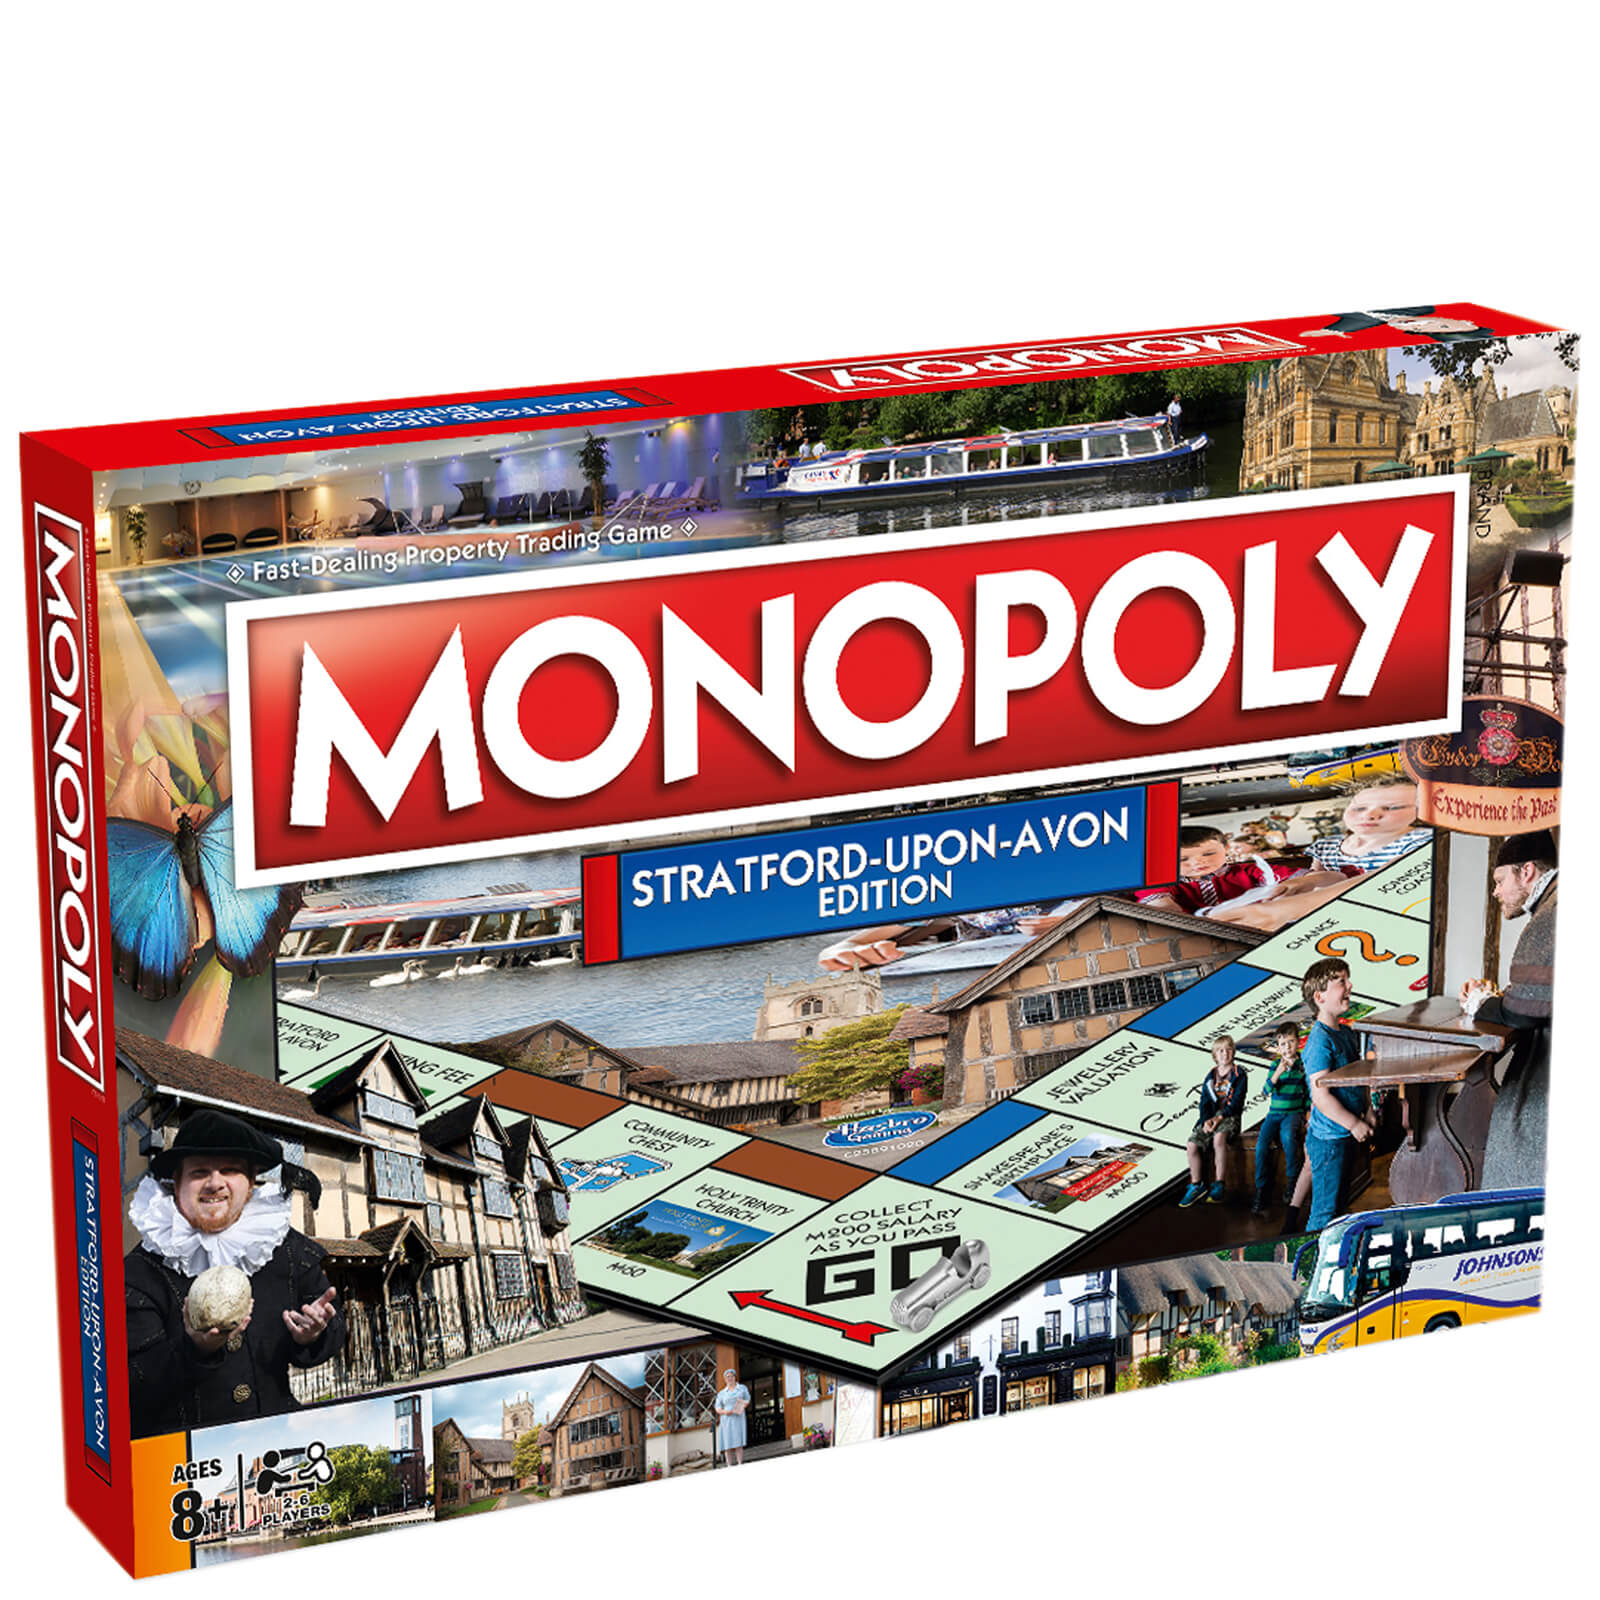 Image of Monopoly Board Game - Stratford Edition